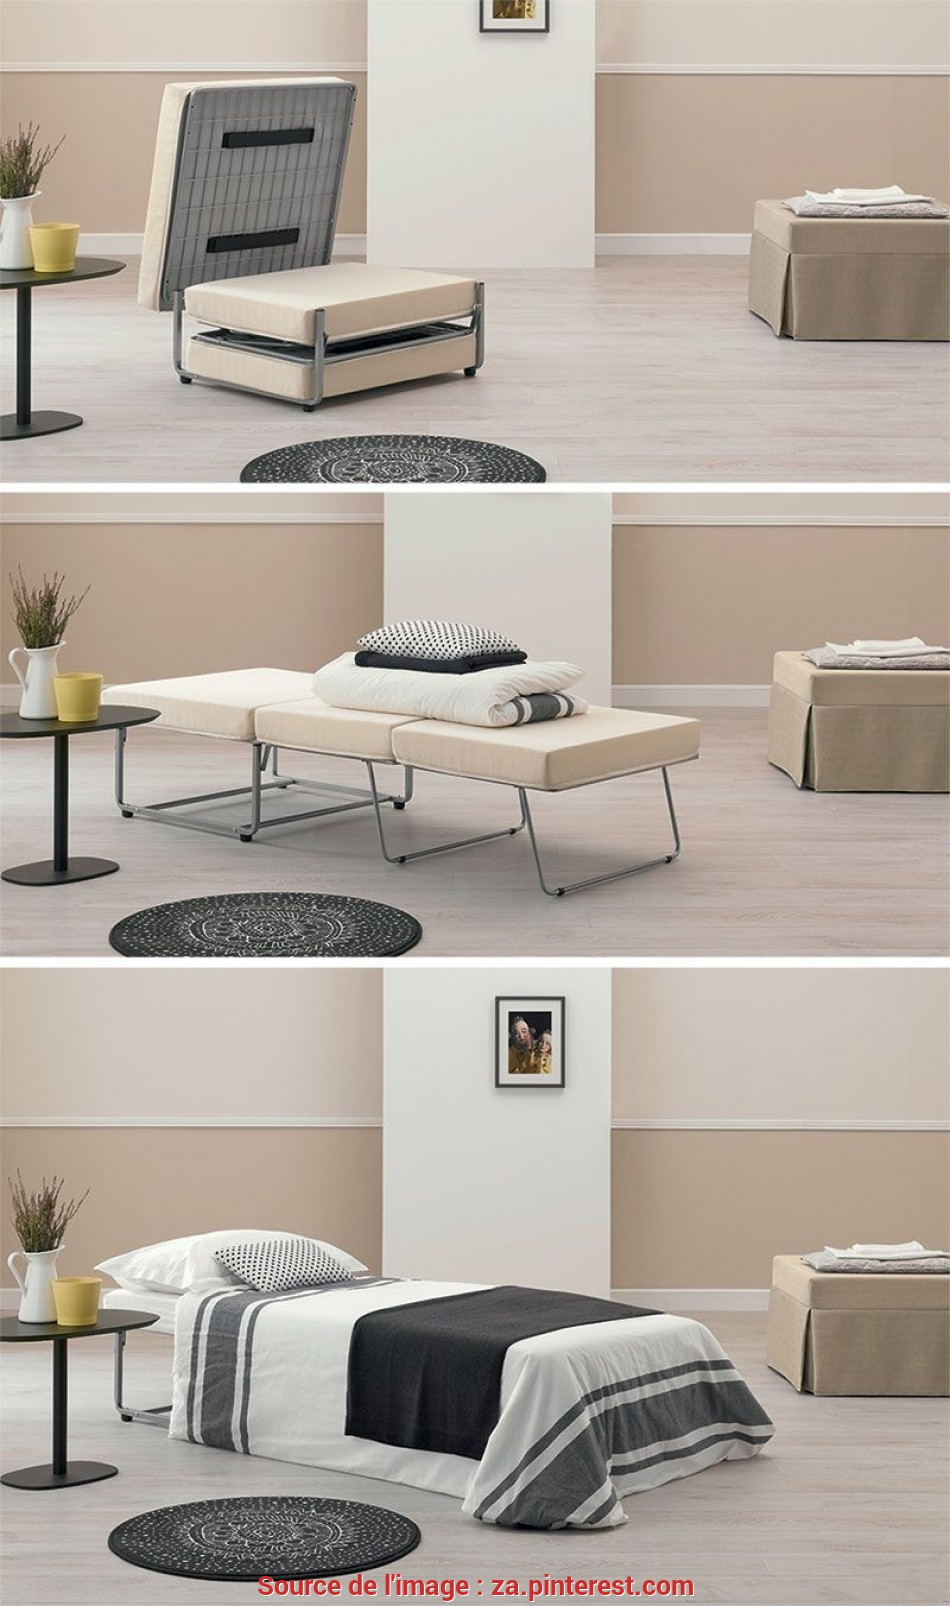 Eccezionale Pouf Letto, Furniture, Pinterest, Folding Beds, Hotel Bedrooms